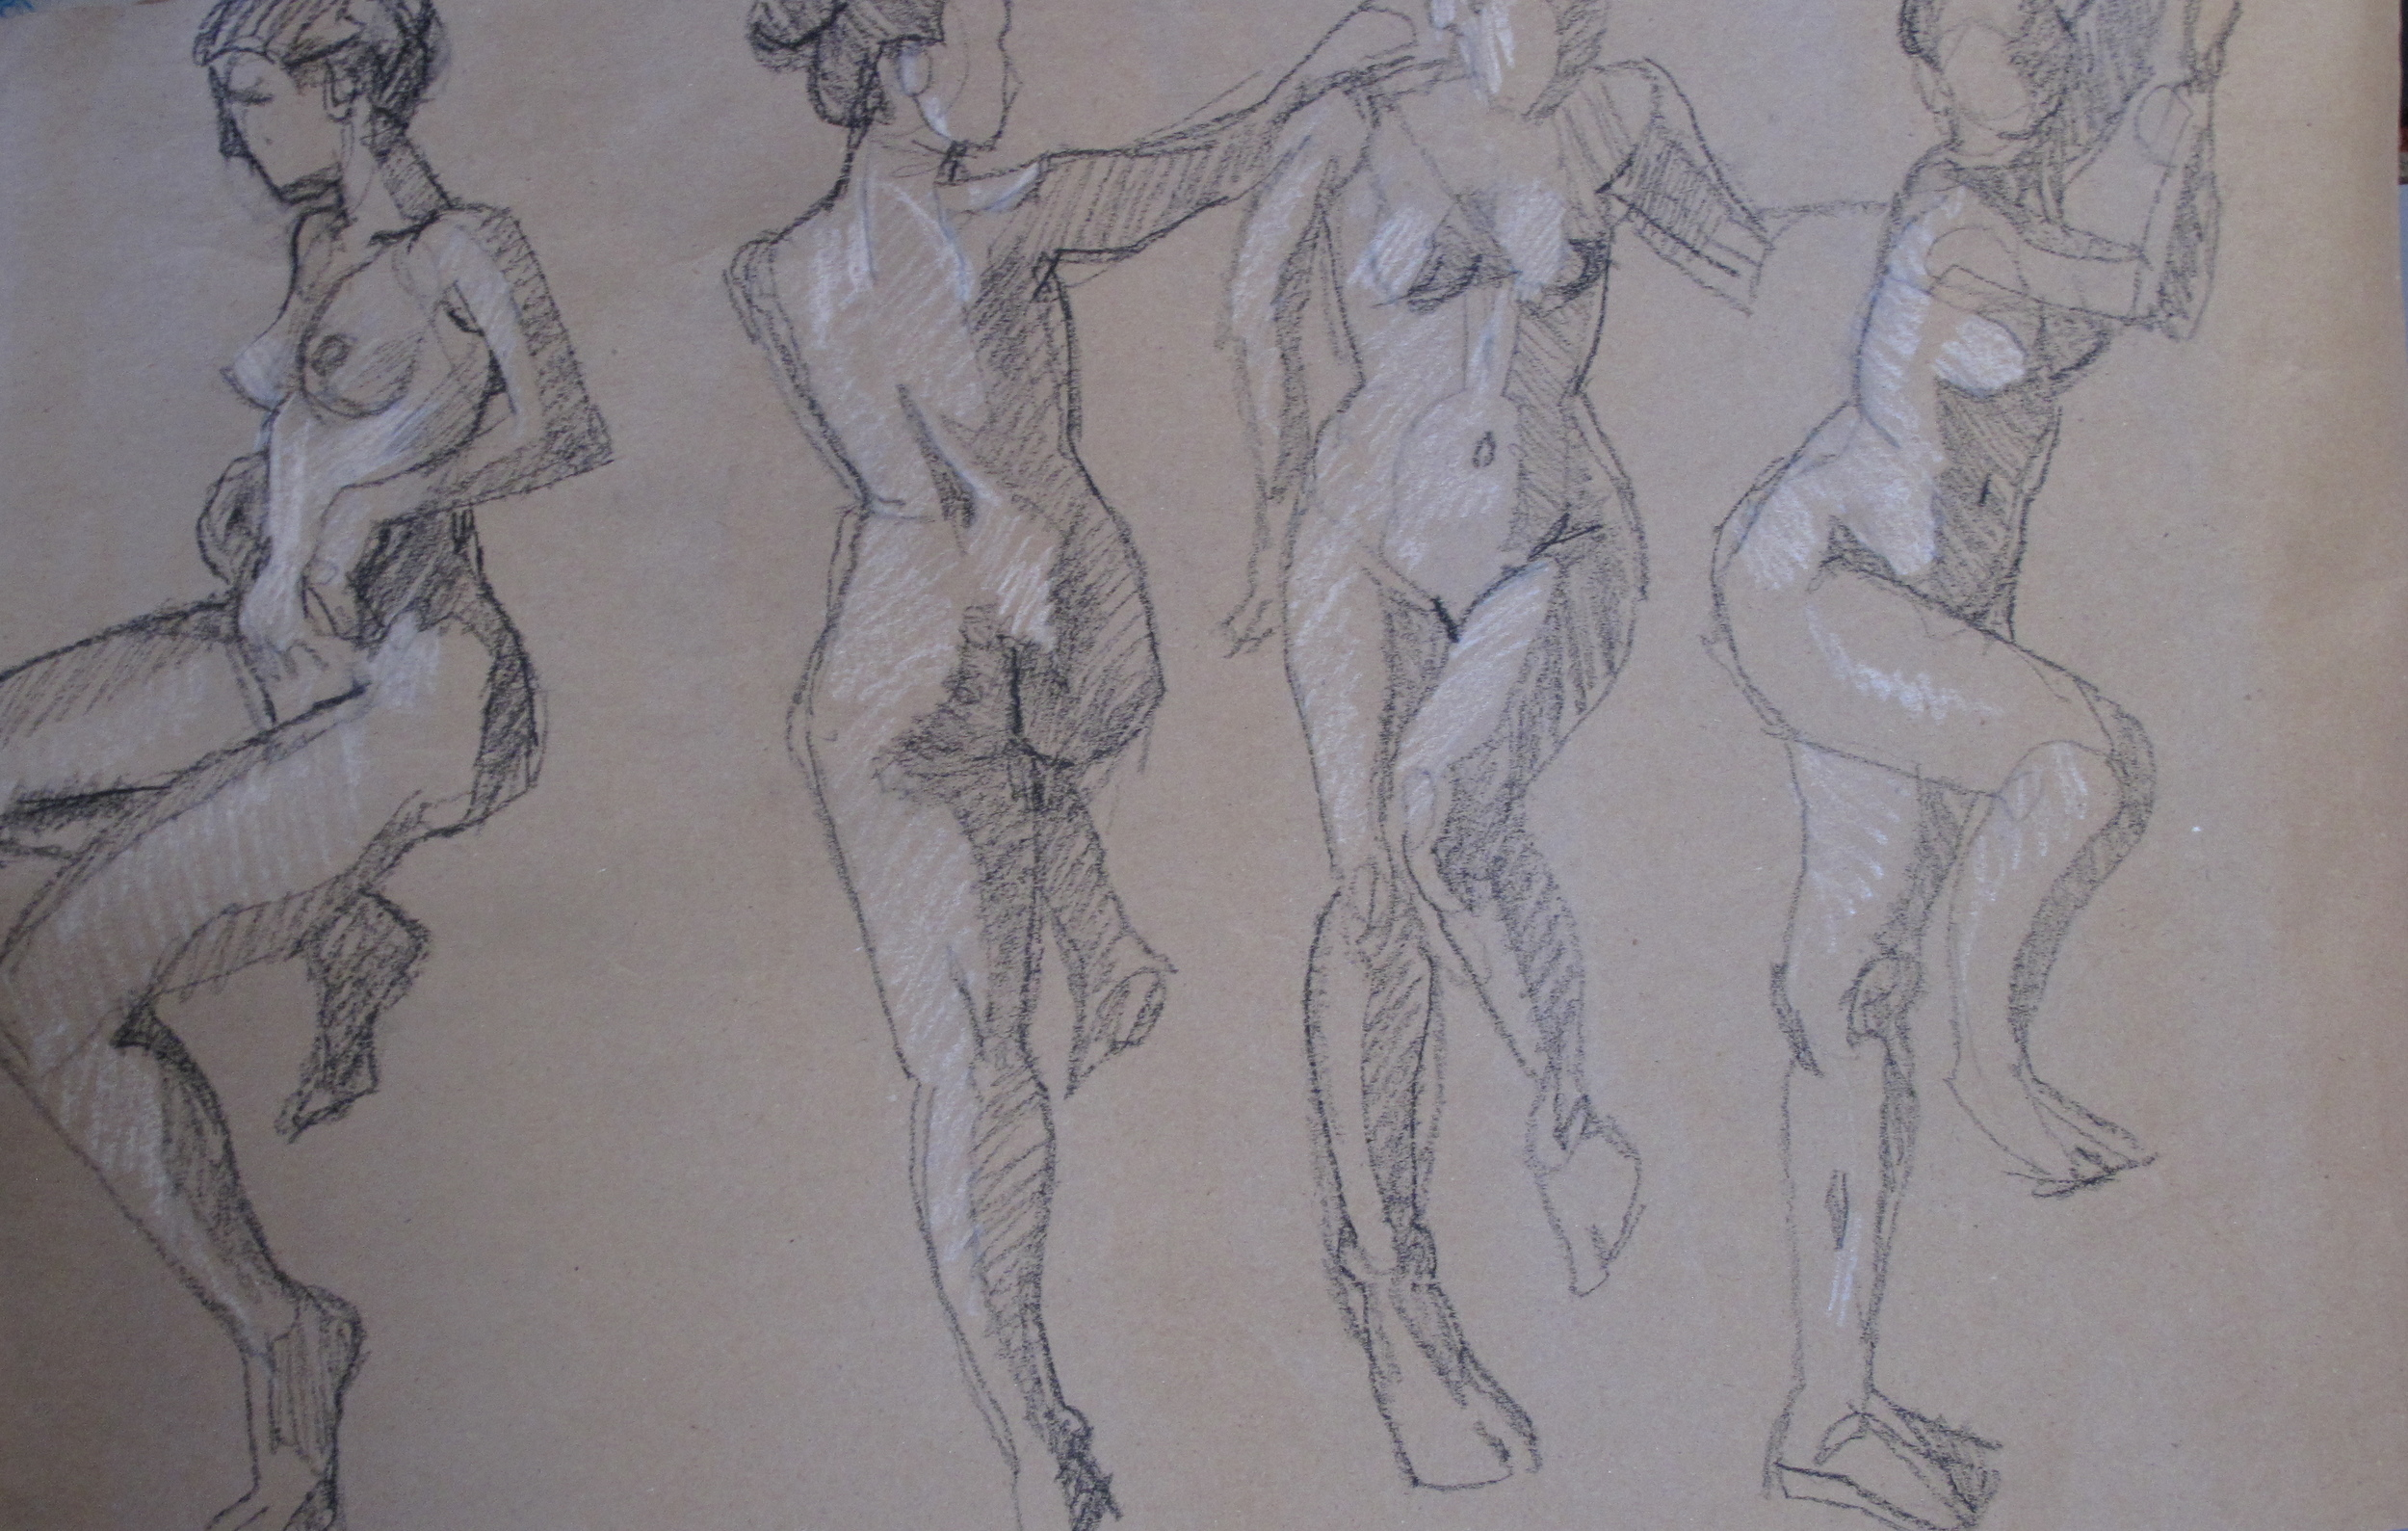 These ladder poses were so much fun, but one wouldn't know how they were managed unless they were told!  Drawings by Charles Cramer